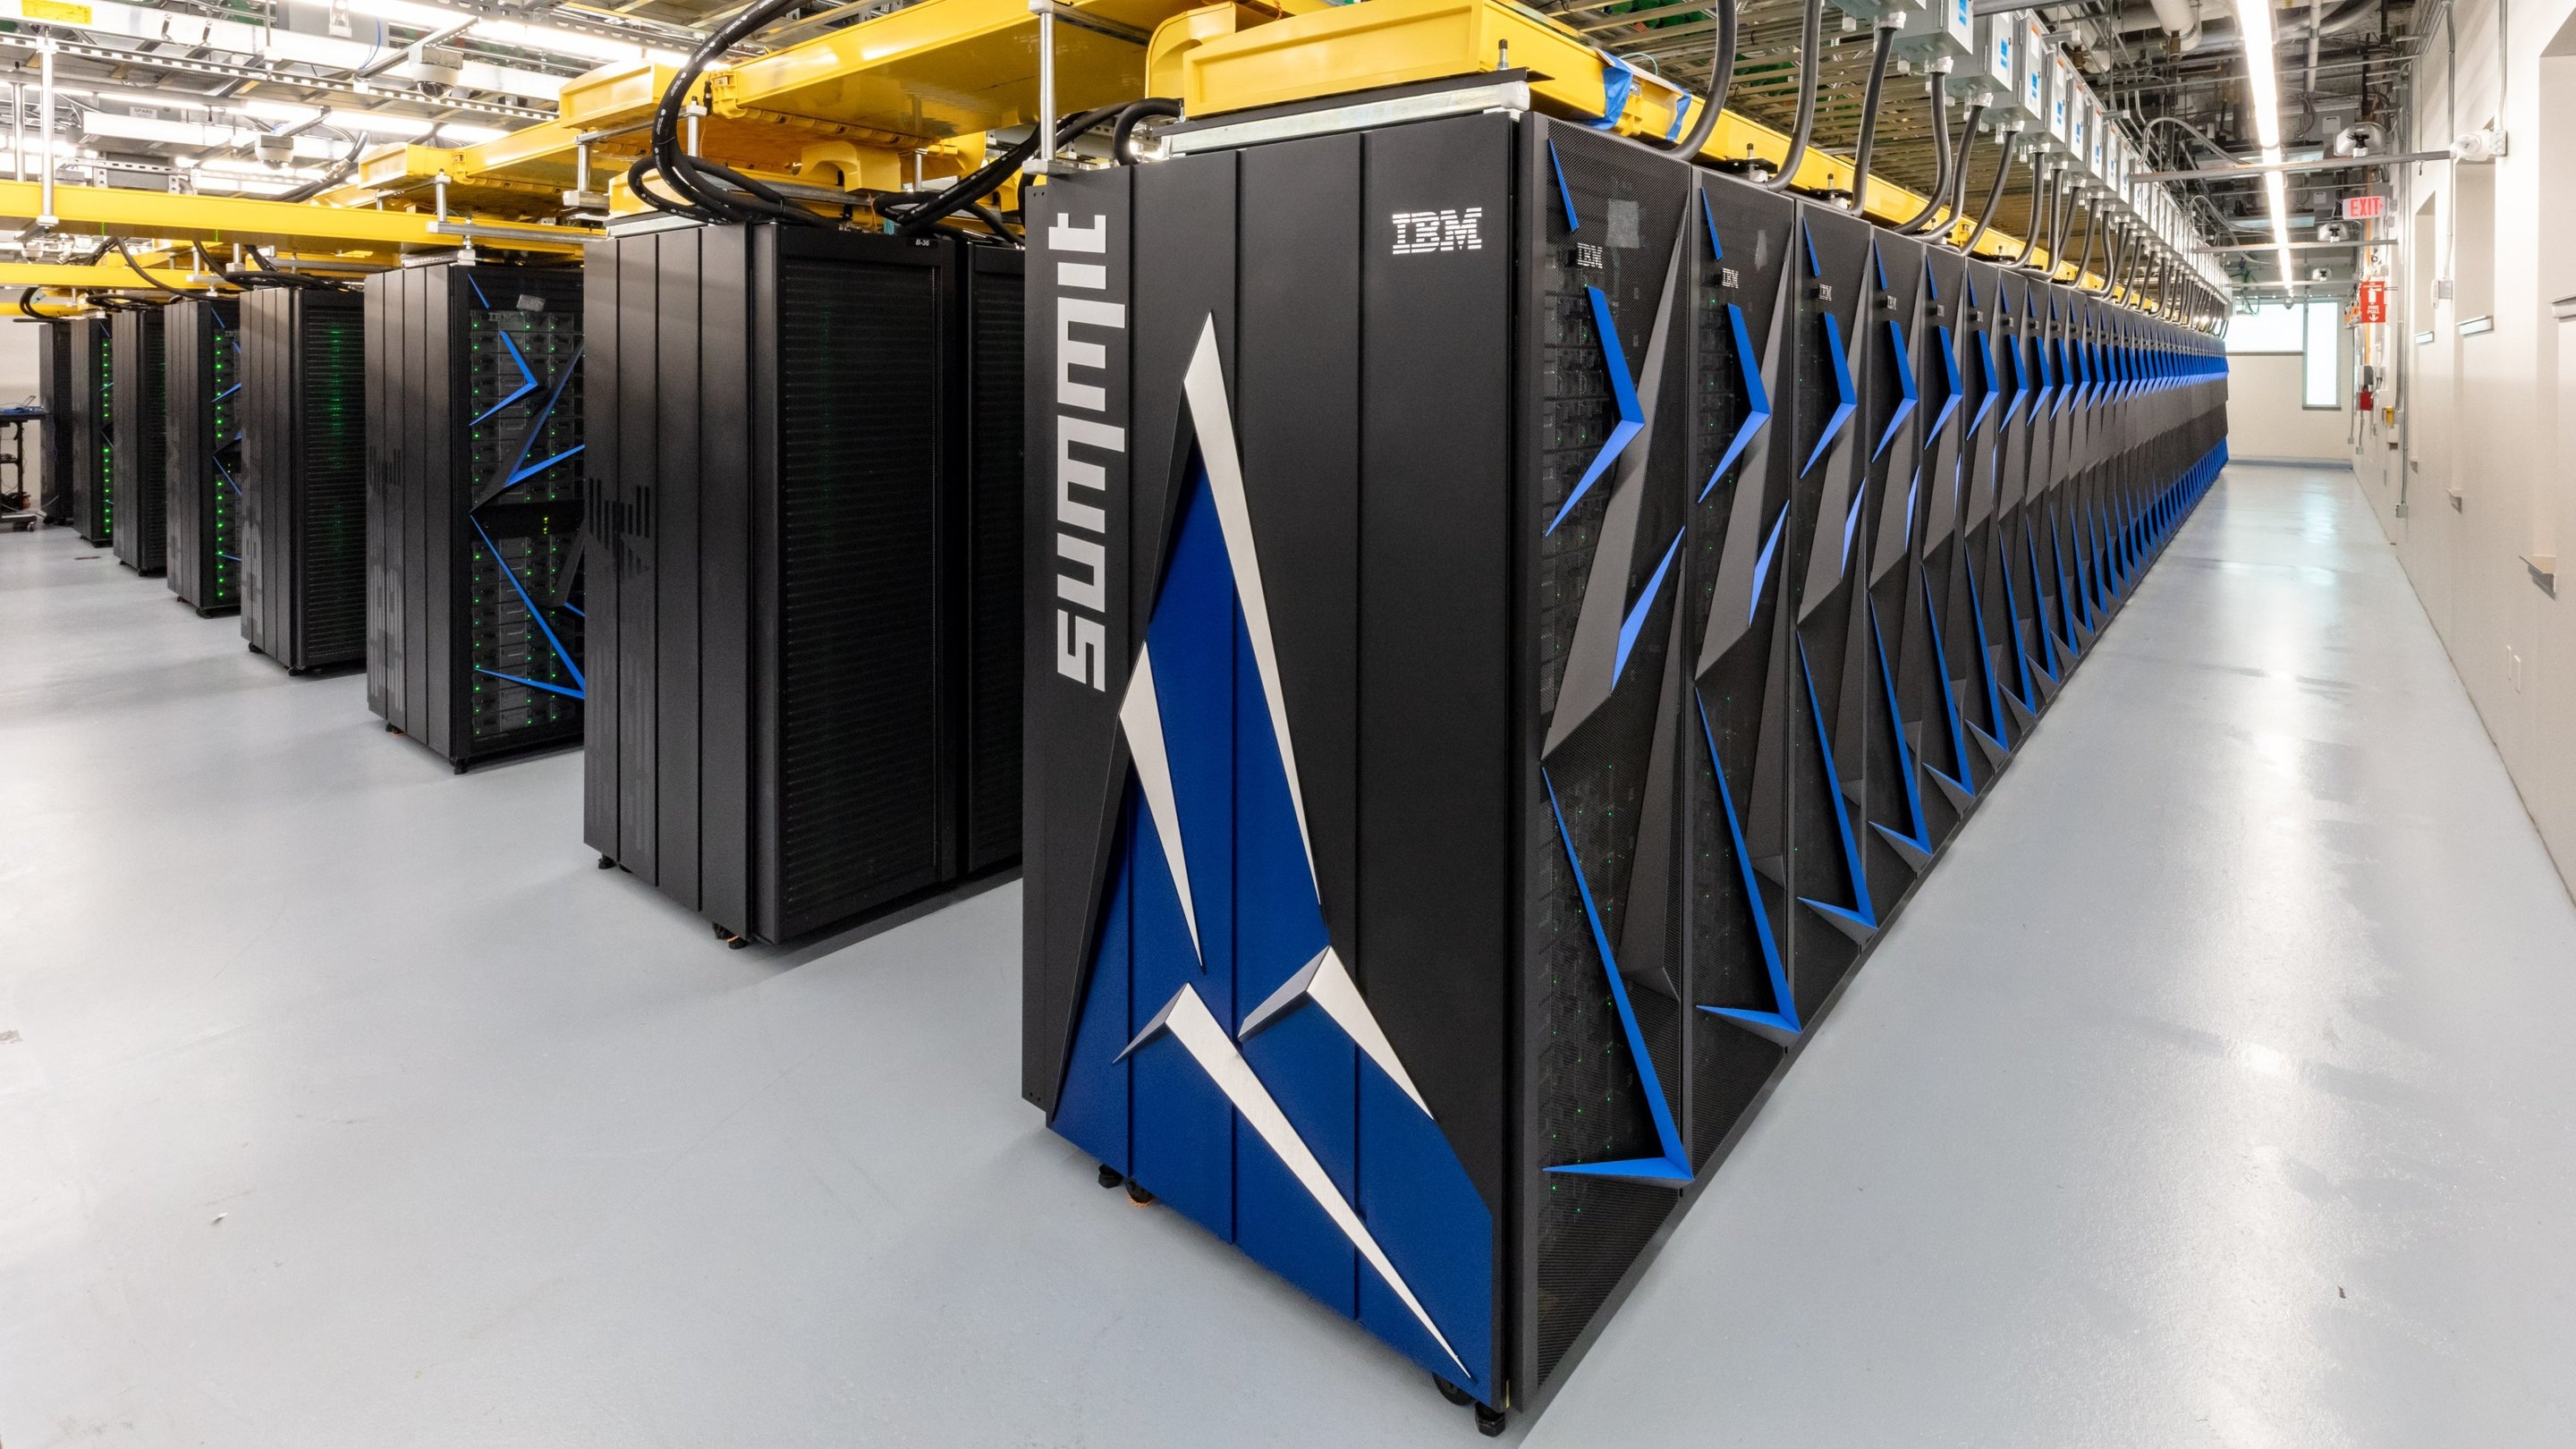 The fastest supercomputer in the world broke the record of artificial intelligence